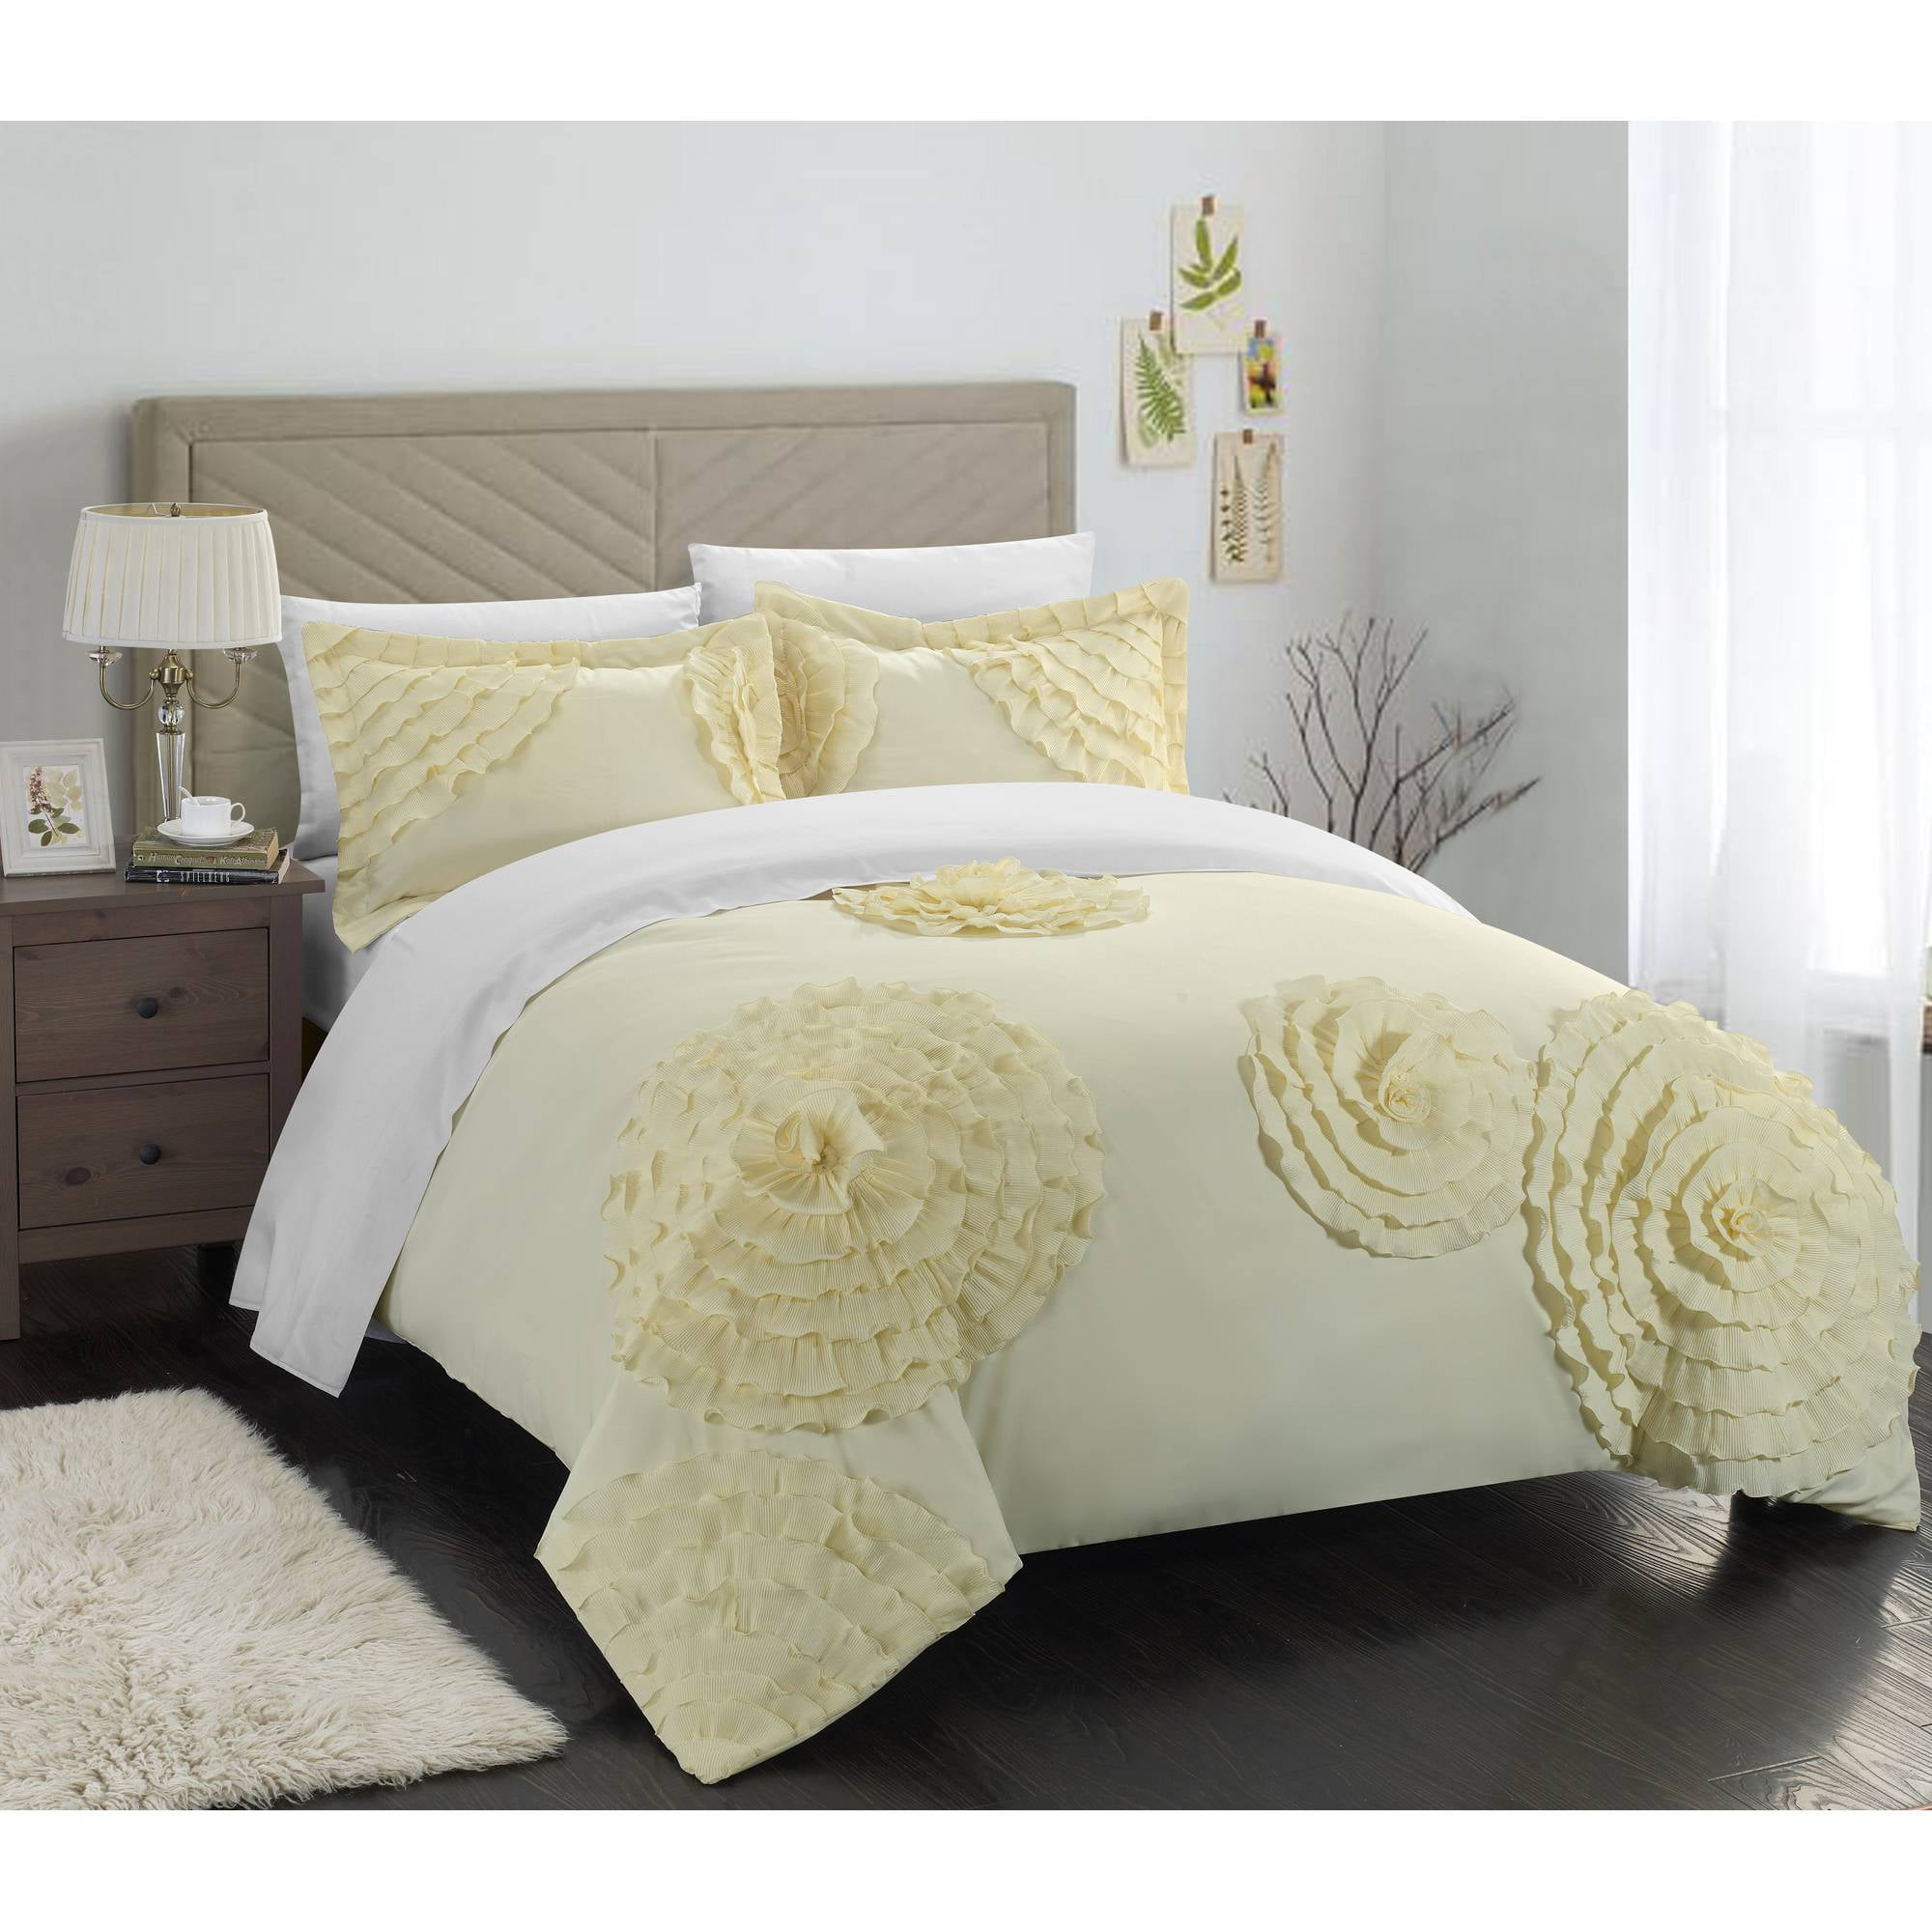 duvet and furnishings home pillowcase bedding set paloma covers pleat cover pleated